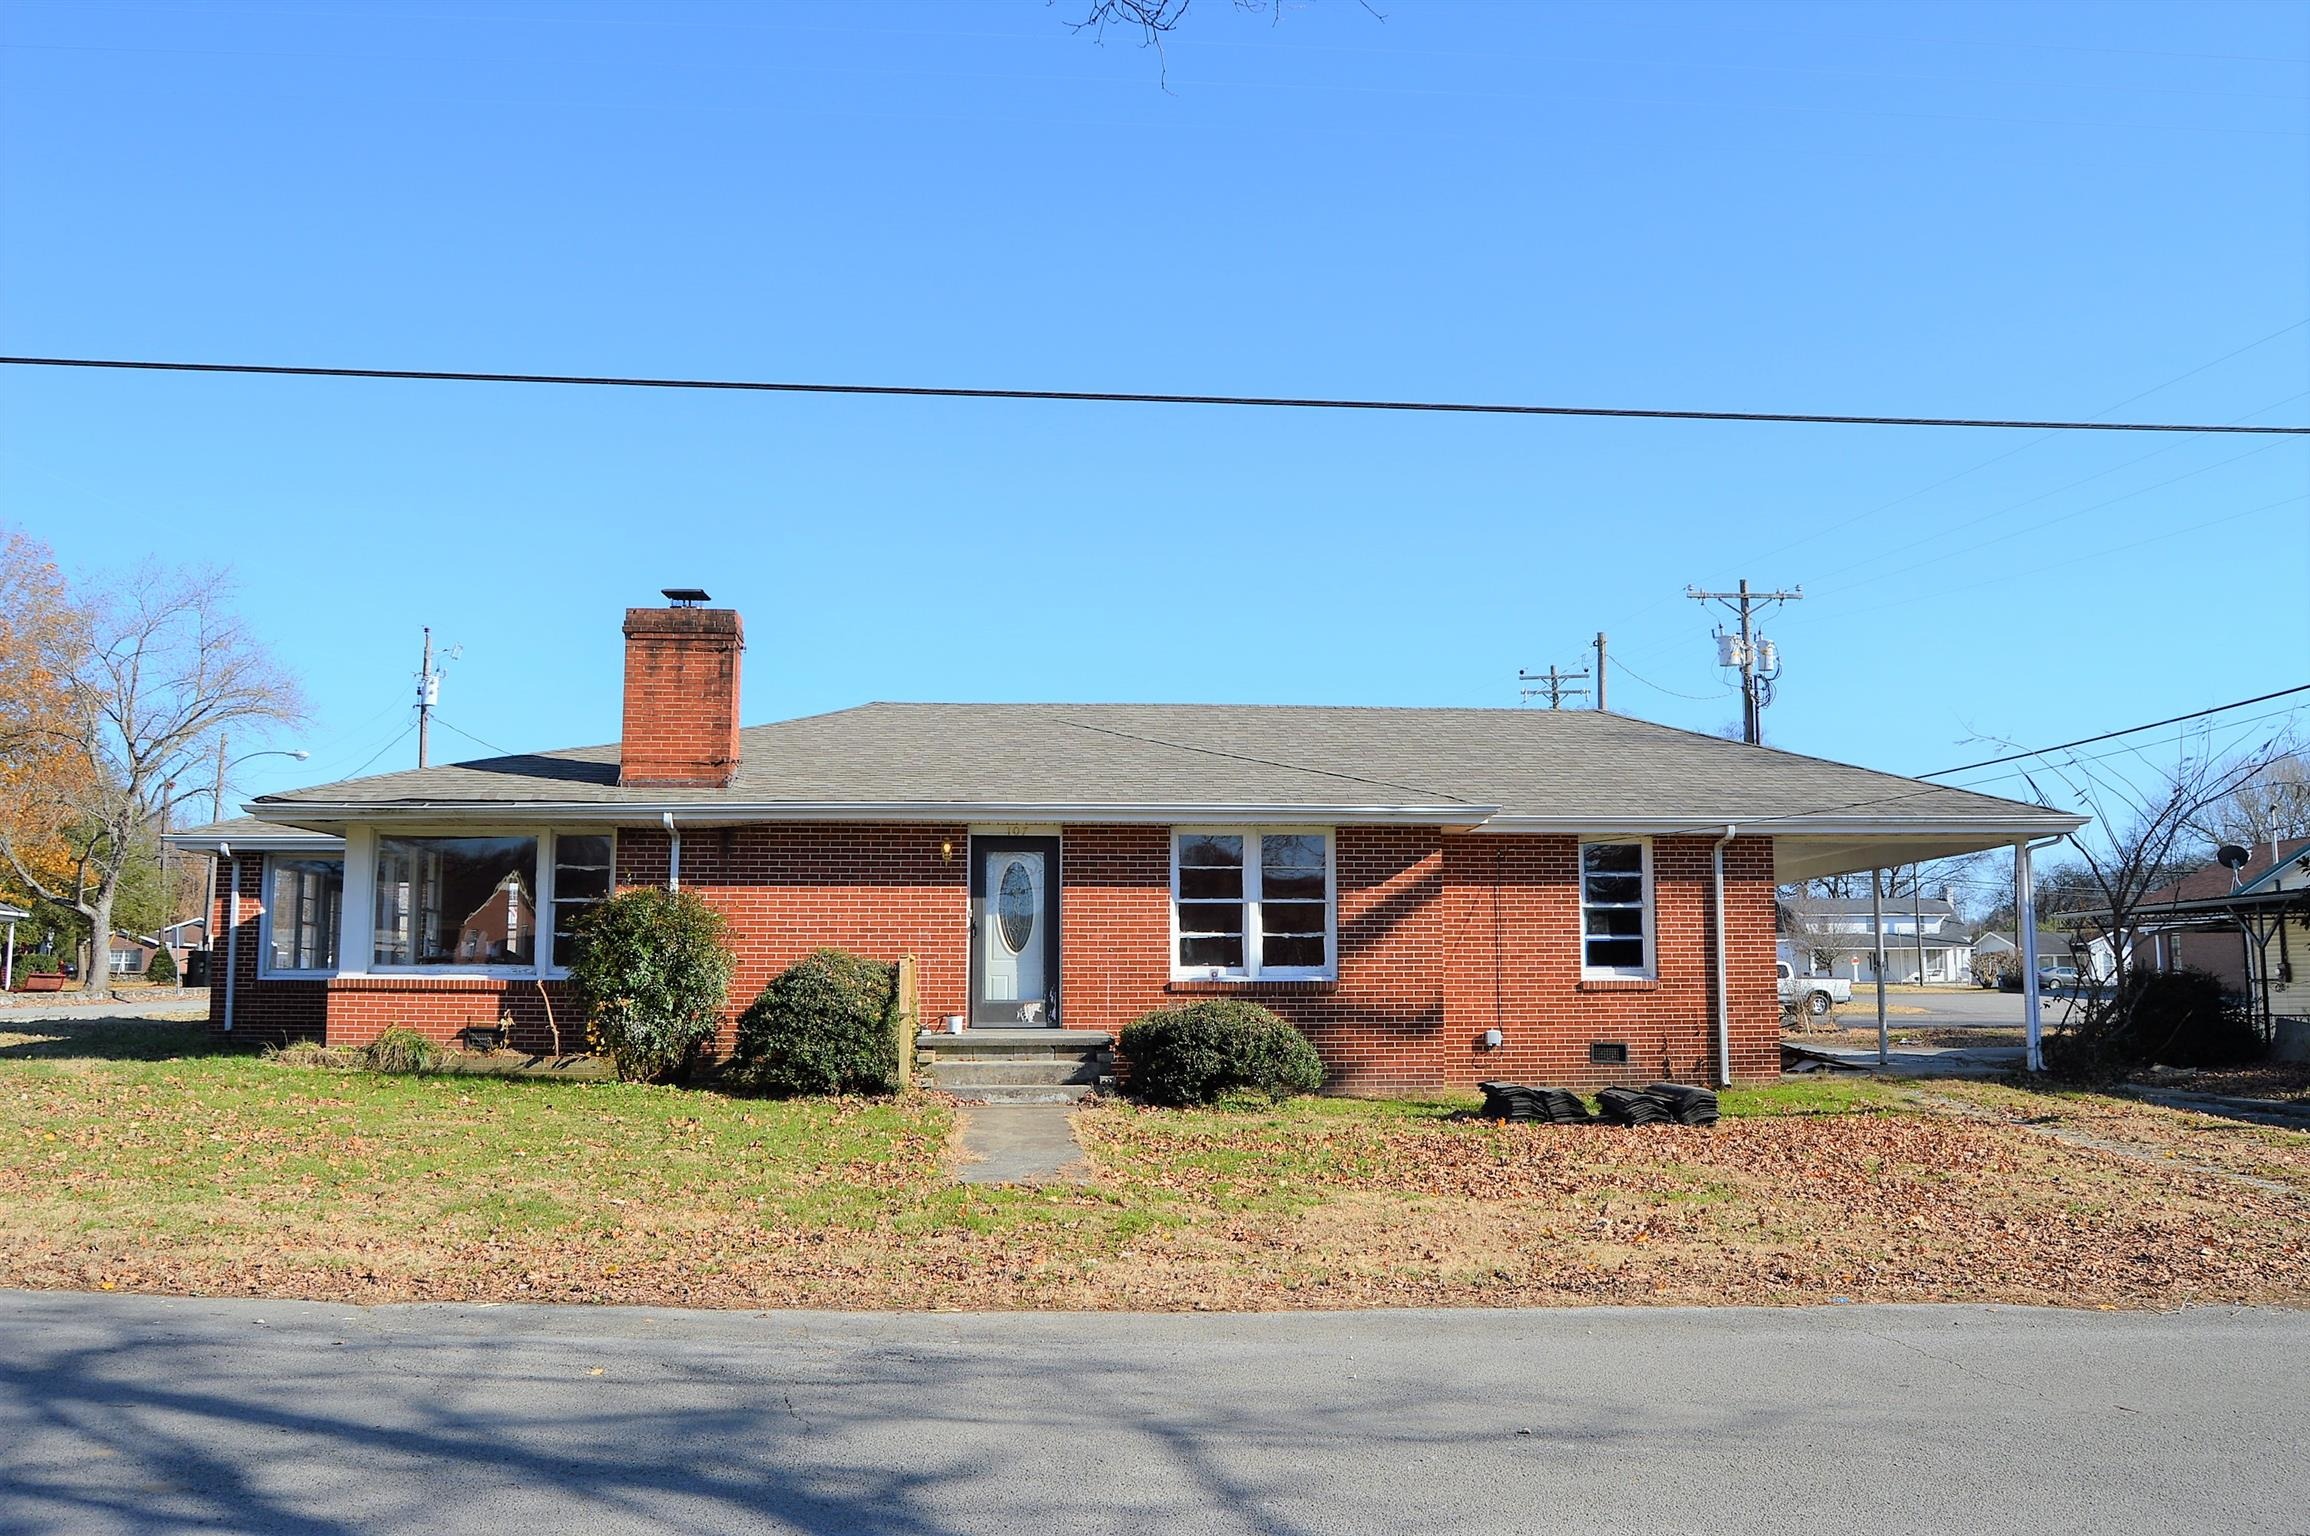 107 S Mulberry St Cornersville, TN 37047